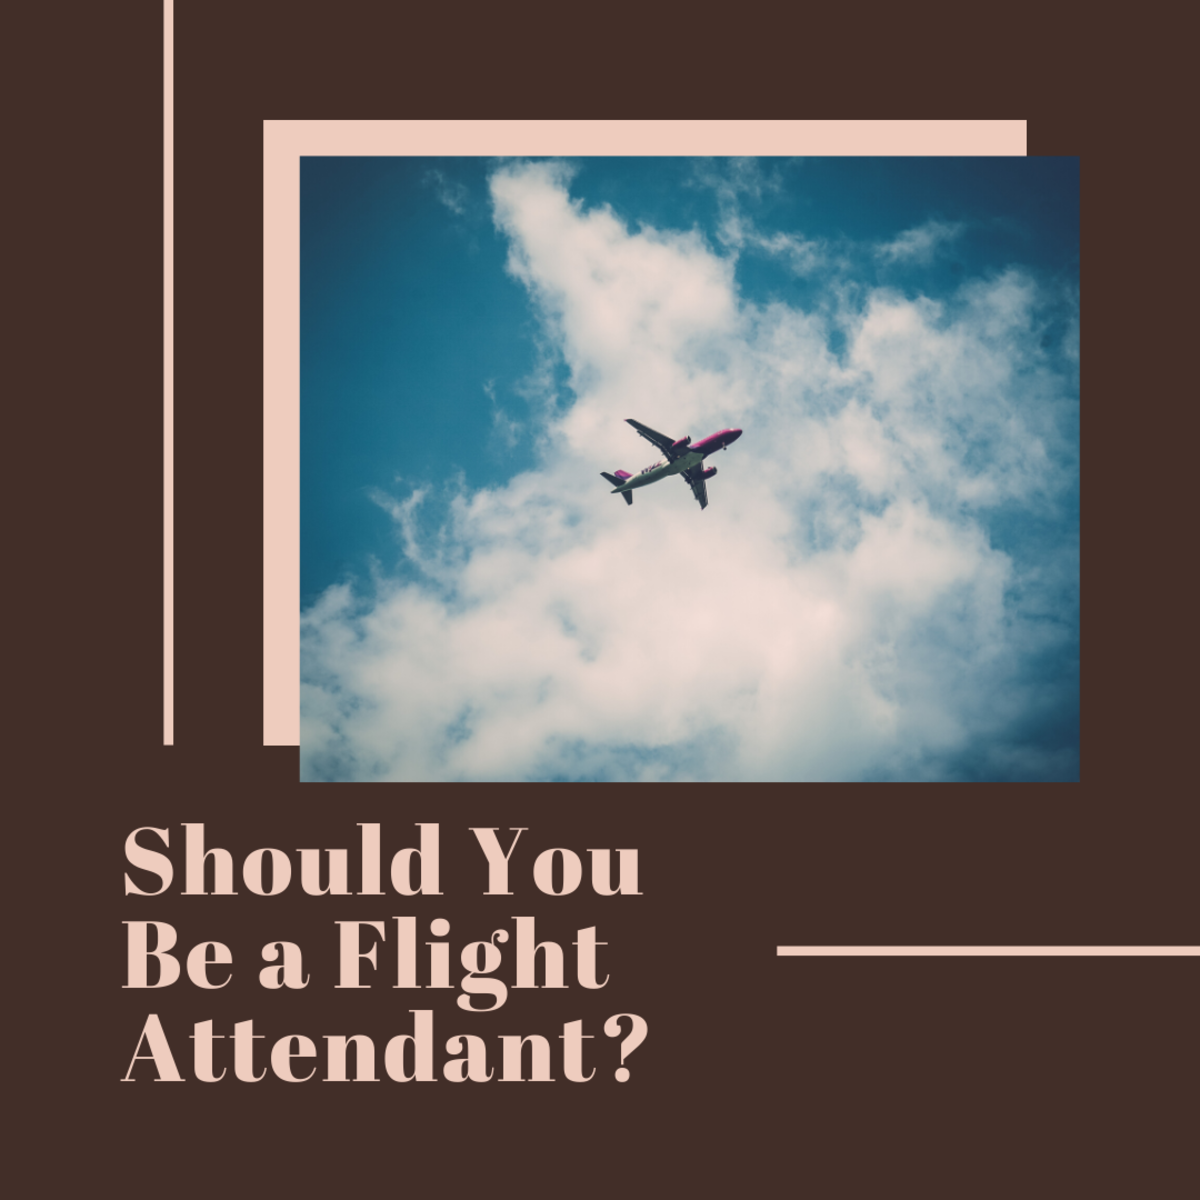 Find out if being a flight attendant is right for you!